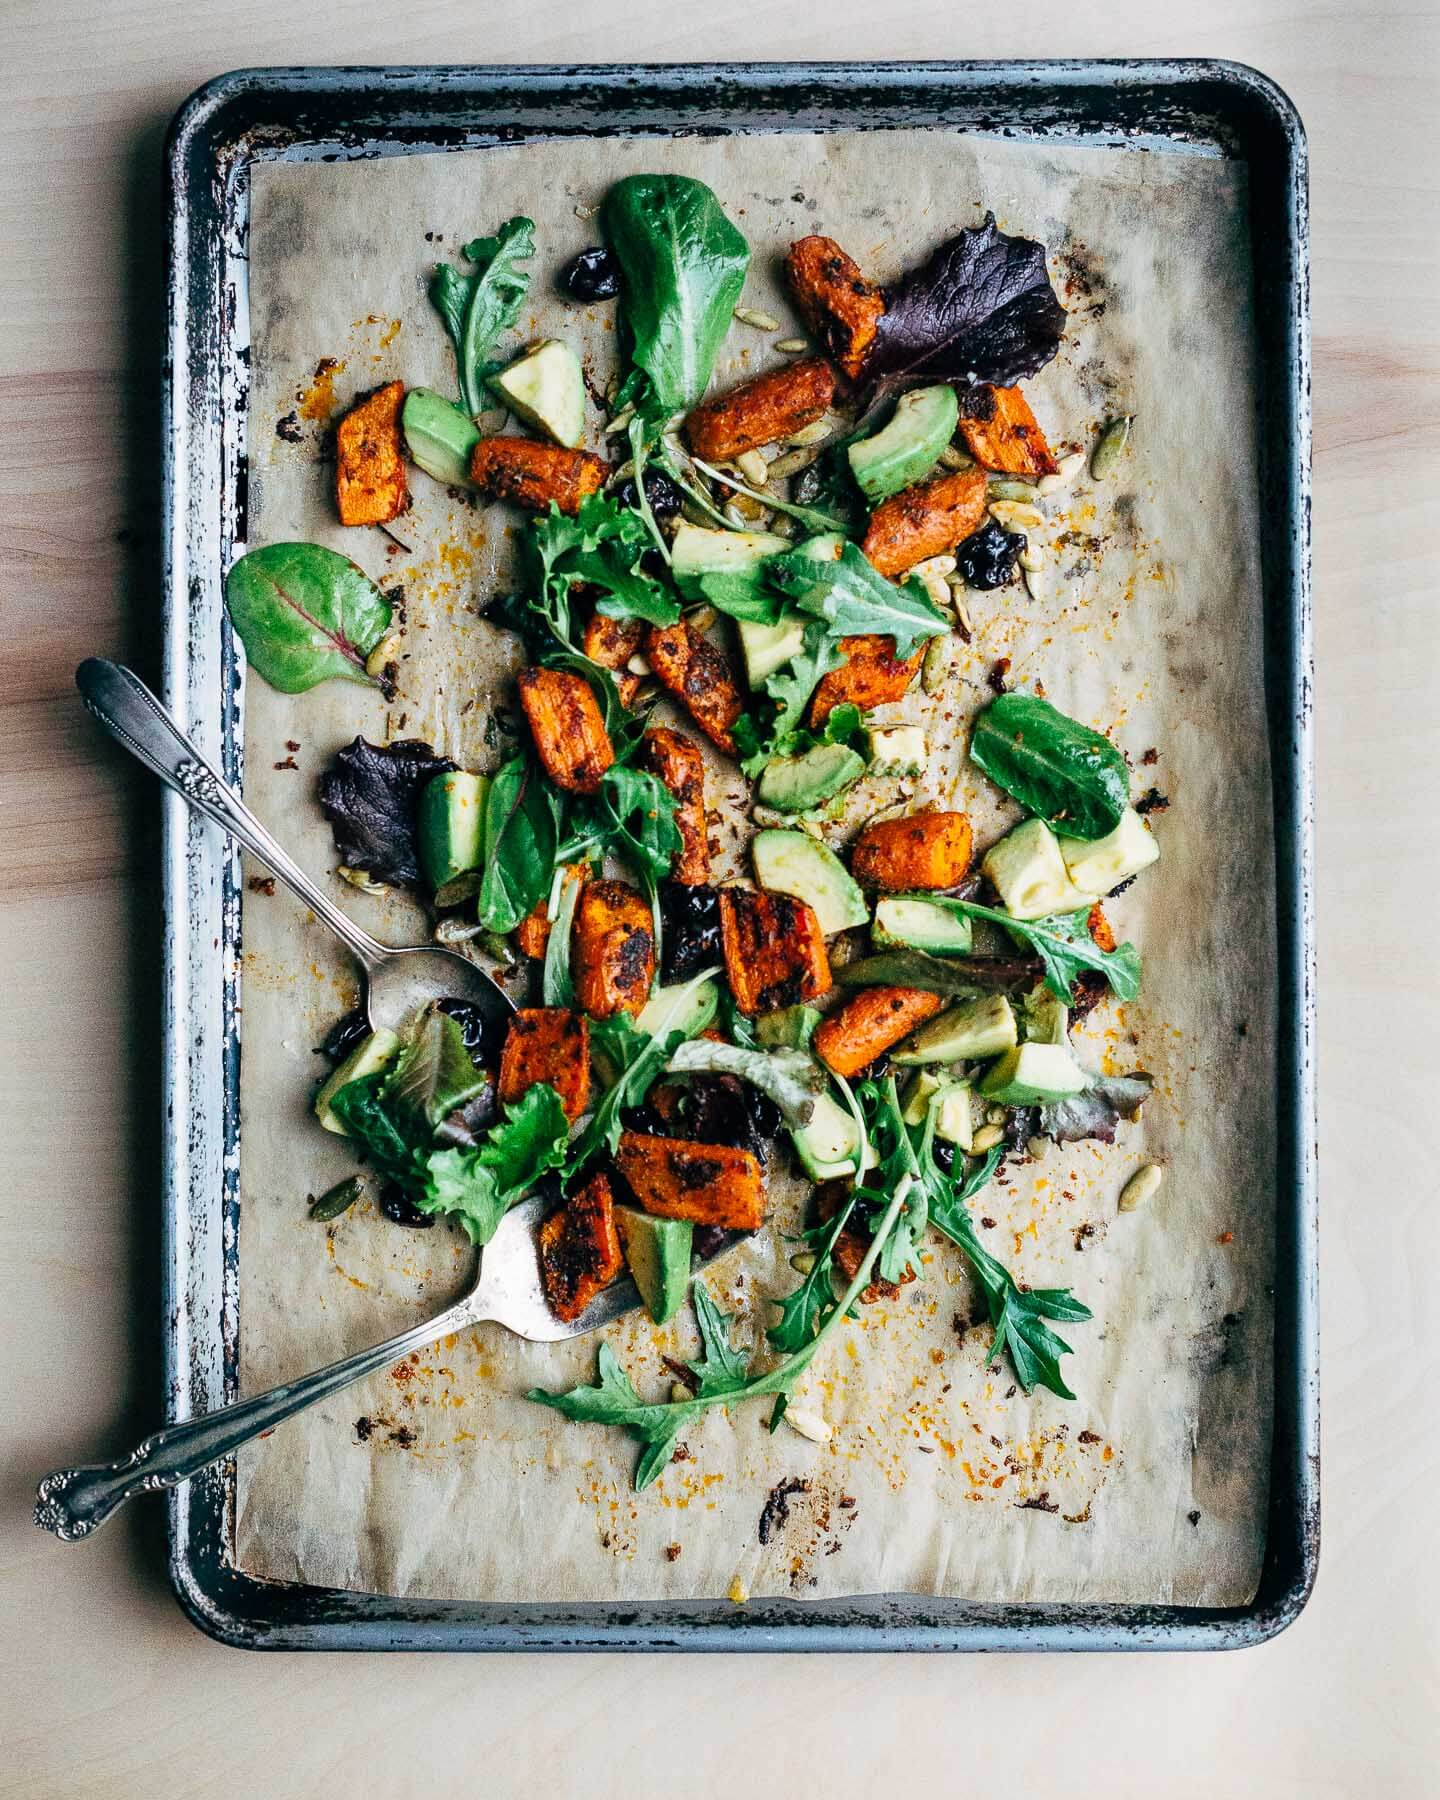 spice-roasted carrot and avocado salad // brooklyn supper